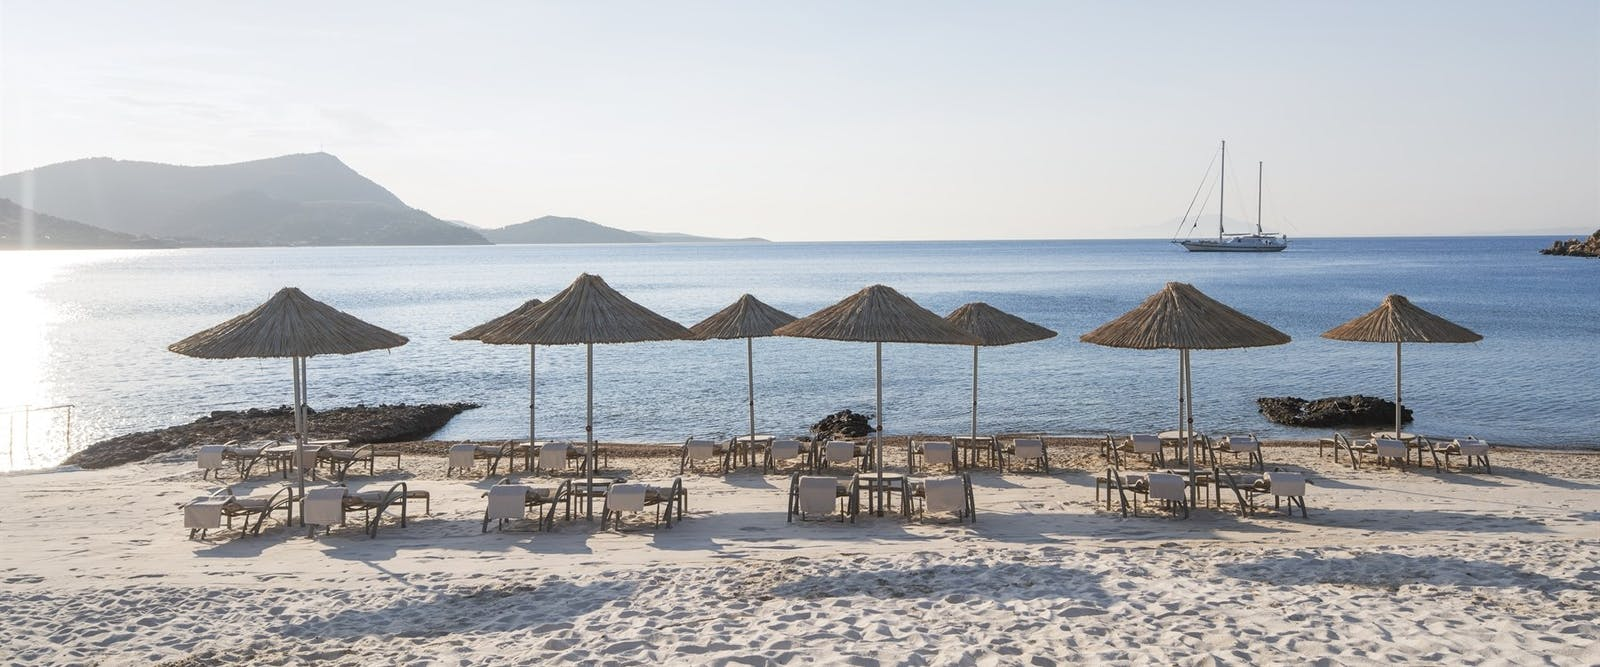 Beach, Kempinski Hotel Barbaros Bay, Bodrum, Turkey